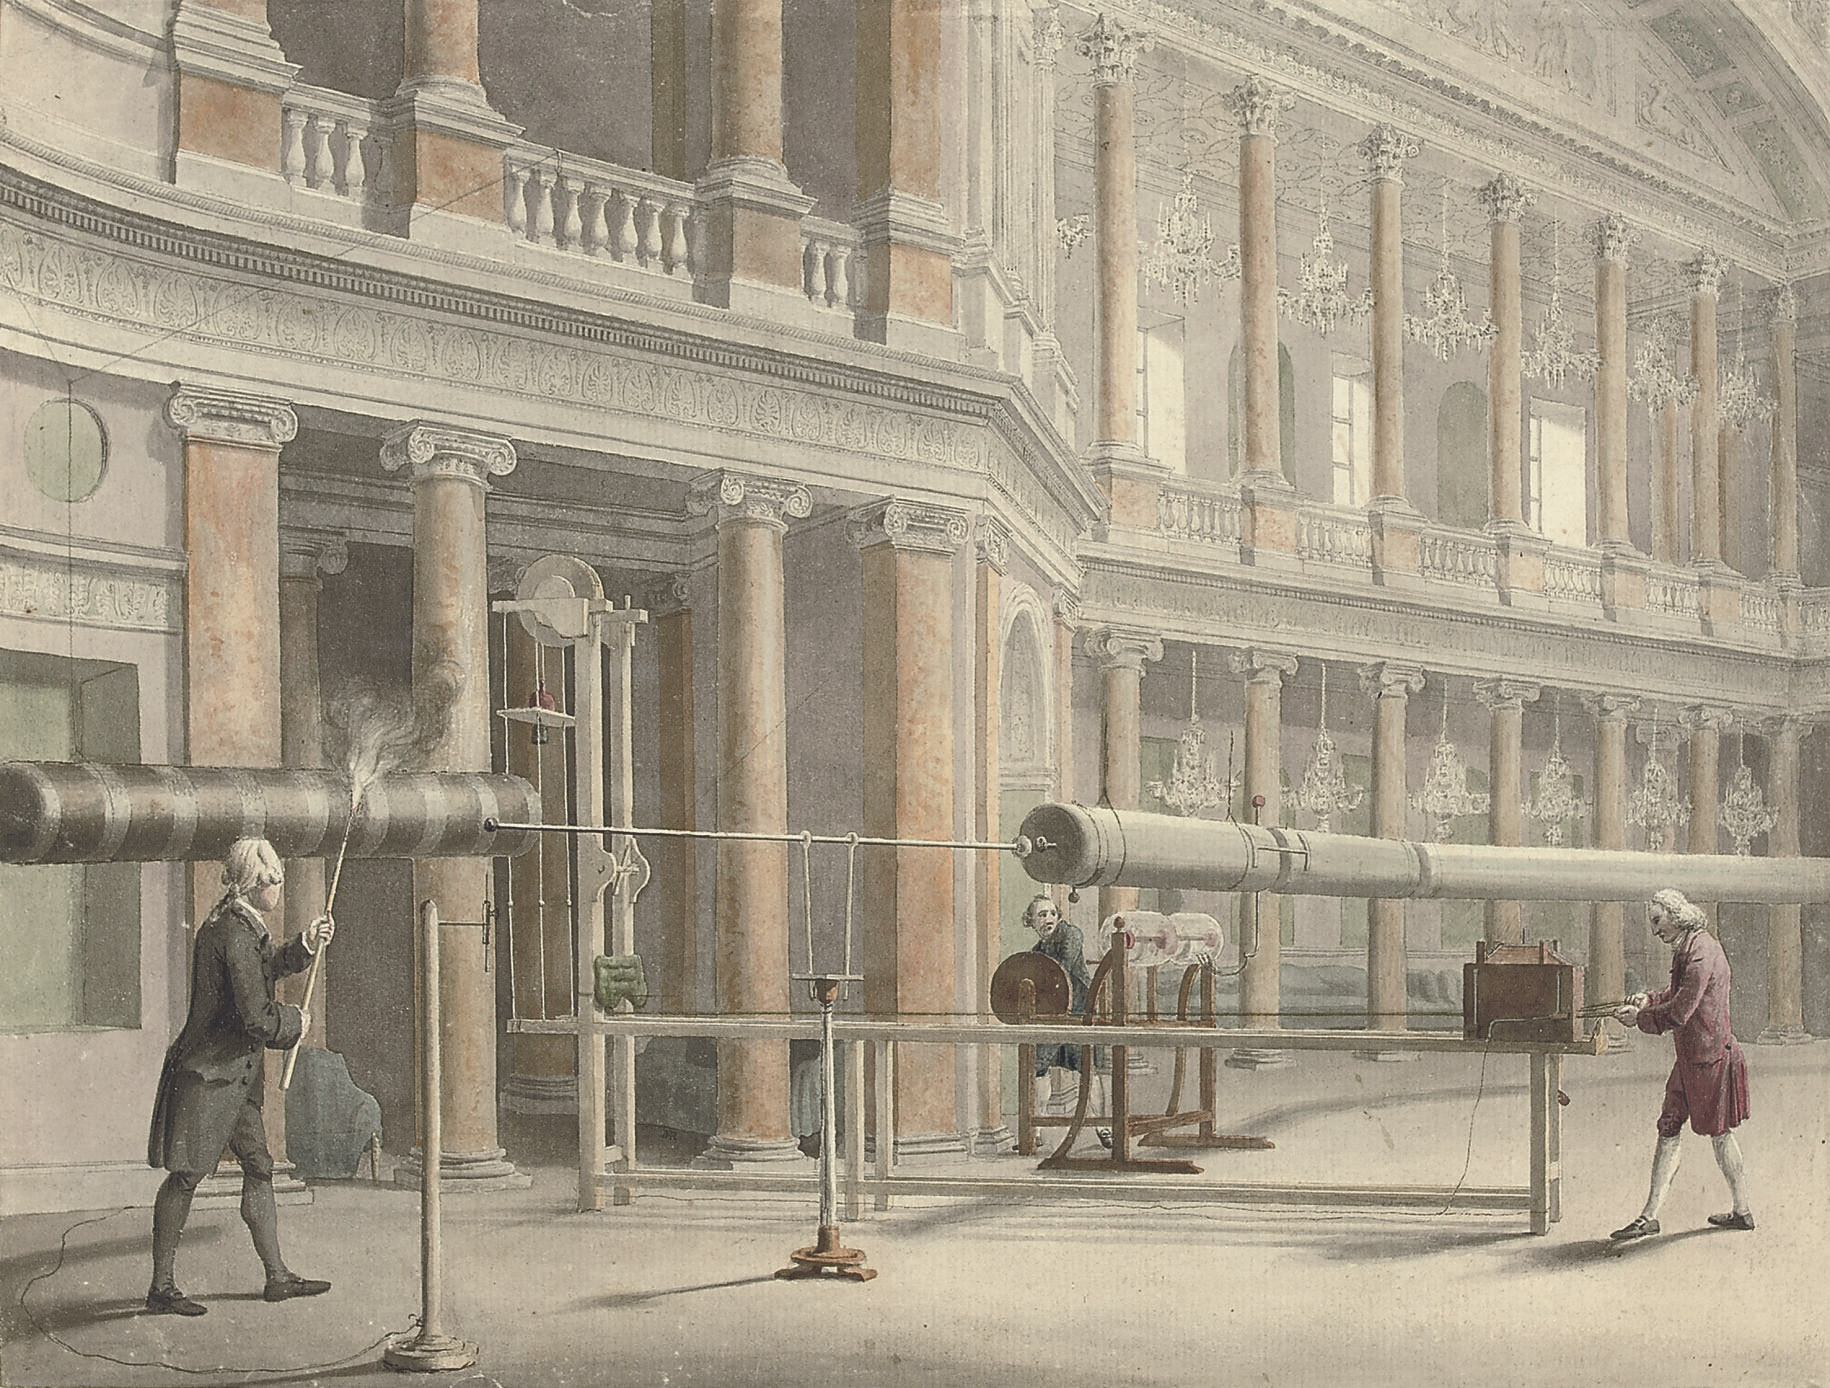 The interior of the Pantheon, Oxford Street with Mr Wilson's experiments with an electrical machine